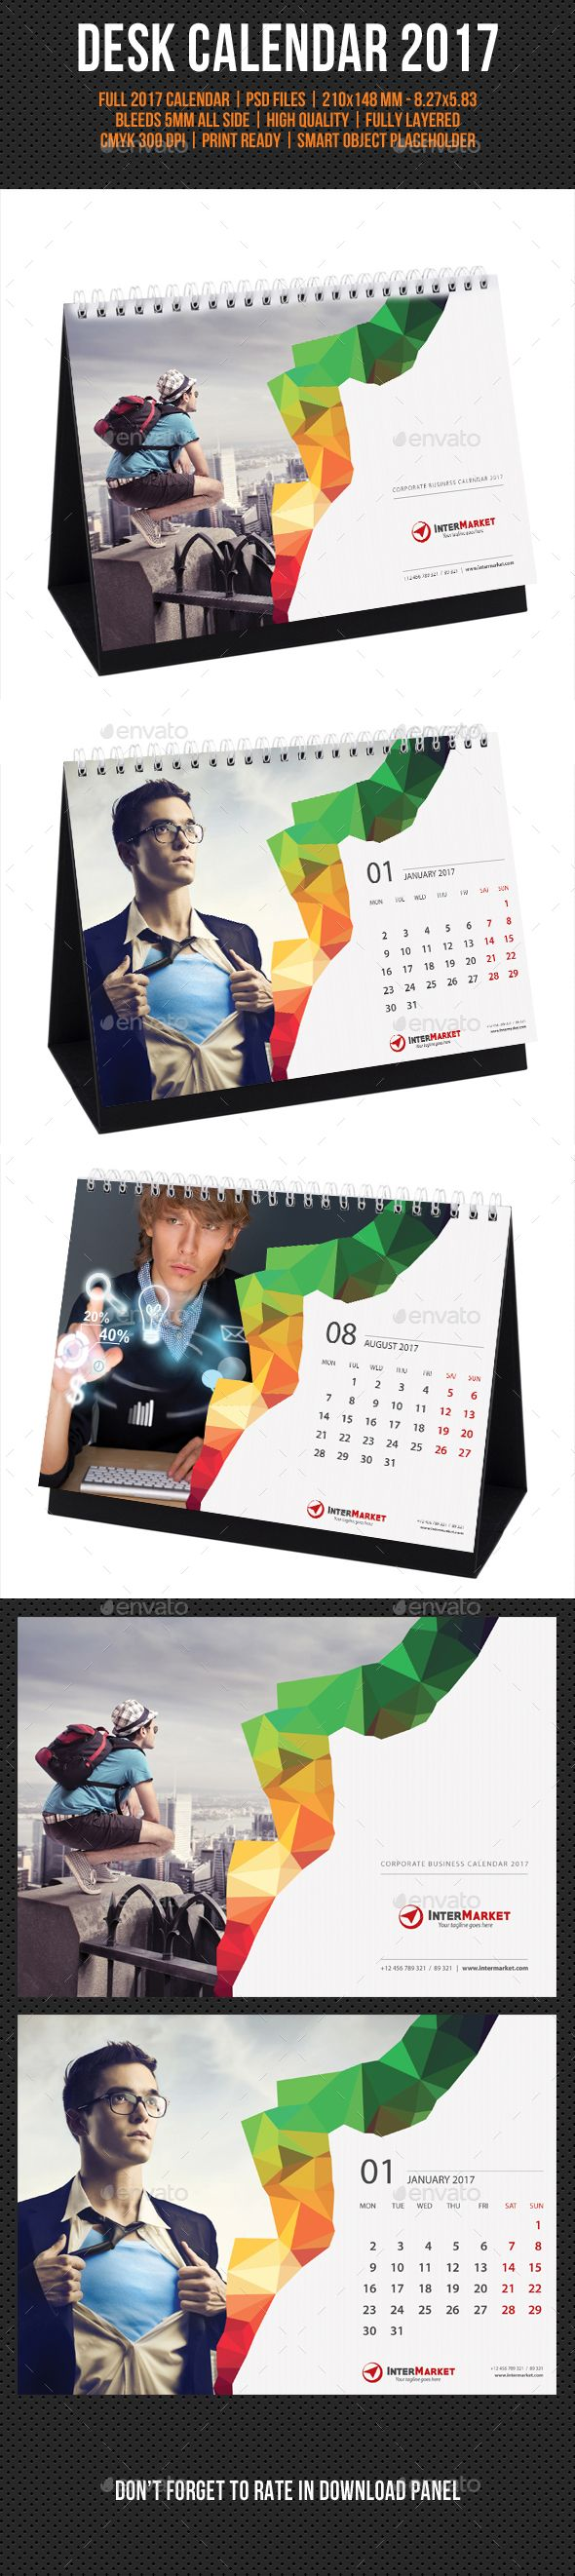 Corporate Desk Calendar 2017 Template PSD. Download here: https://graphicriver.net/item/corporate-desk-calendar-2017-v04/16966251?ref=ksioks